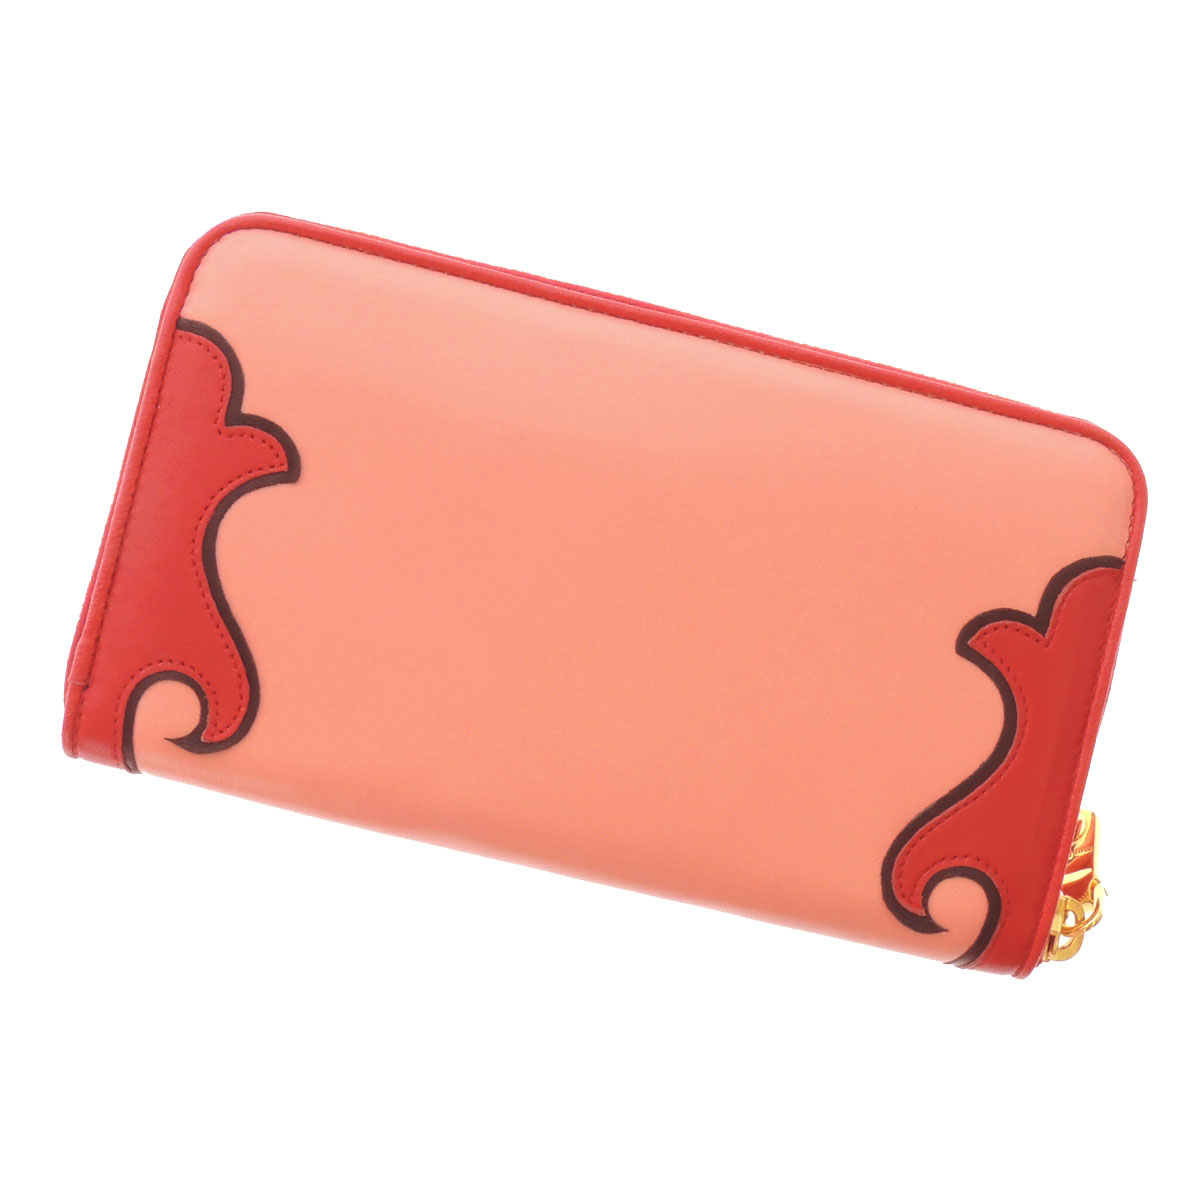 MIUMIU rose motif long wallet (there is a coin purse) leather Lady's